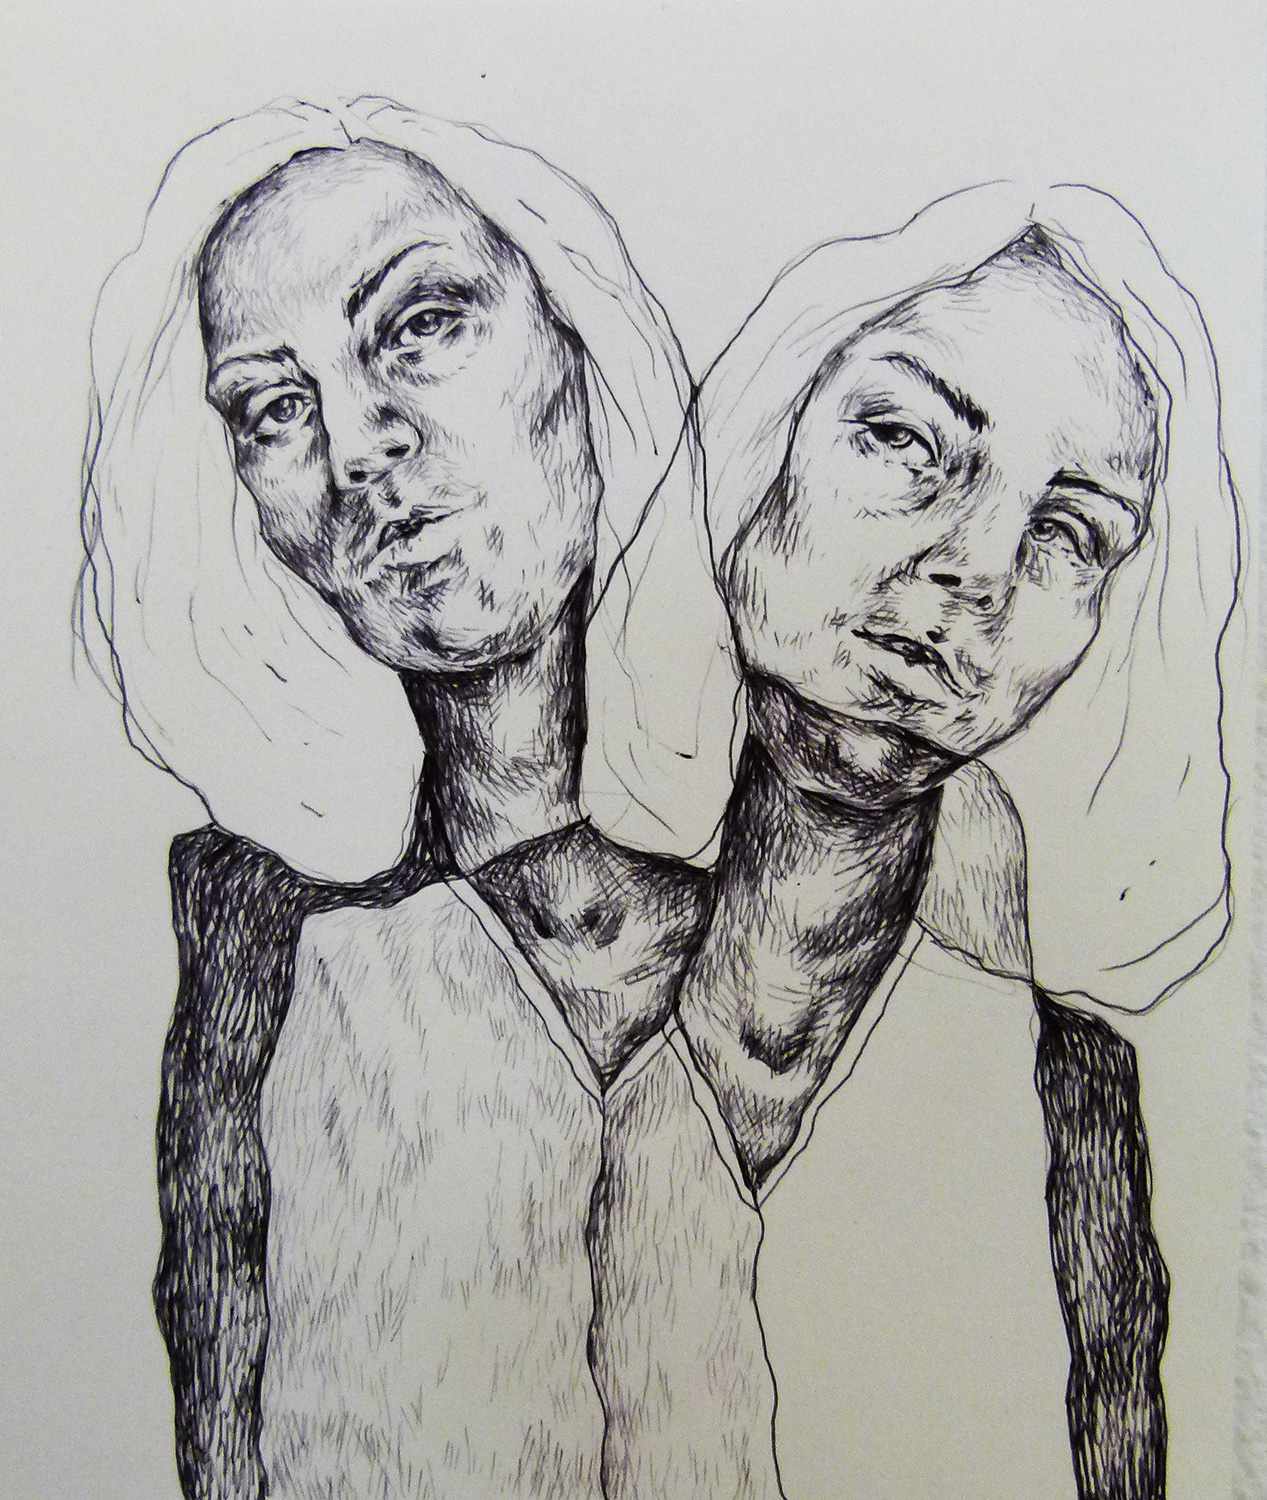 pen on paper, 20 x 15 cm, 2016, sold